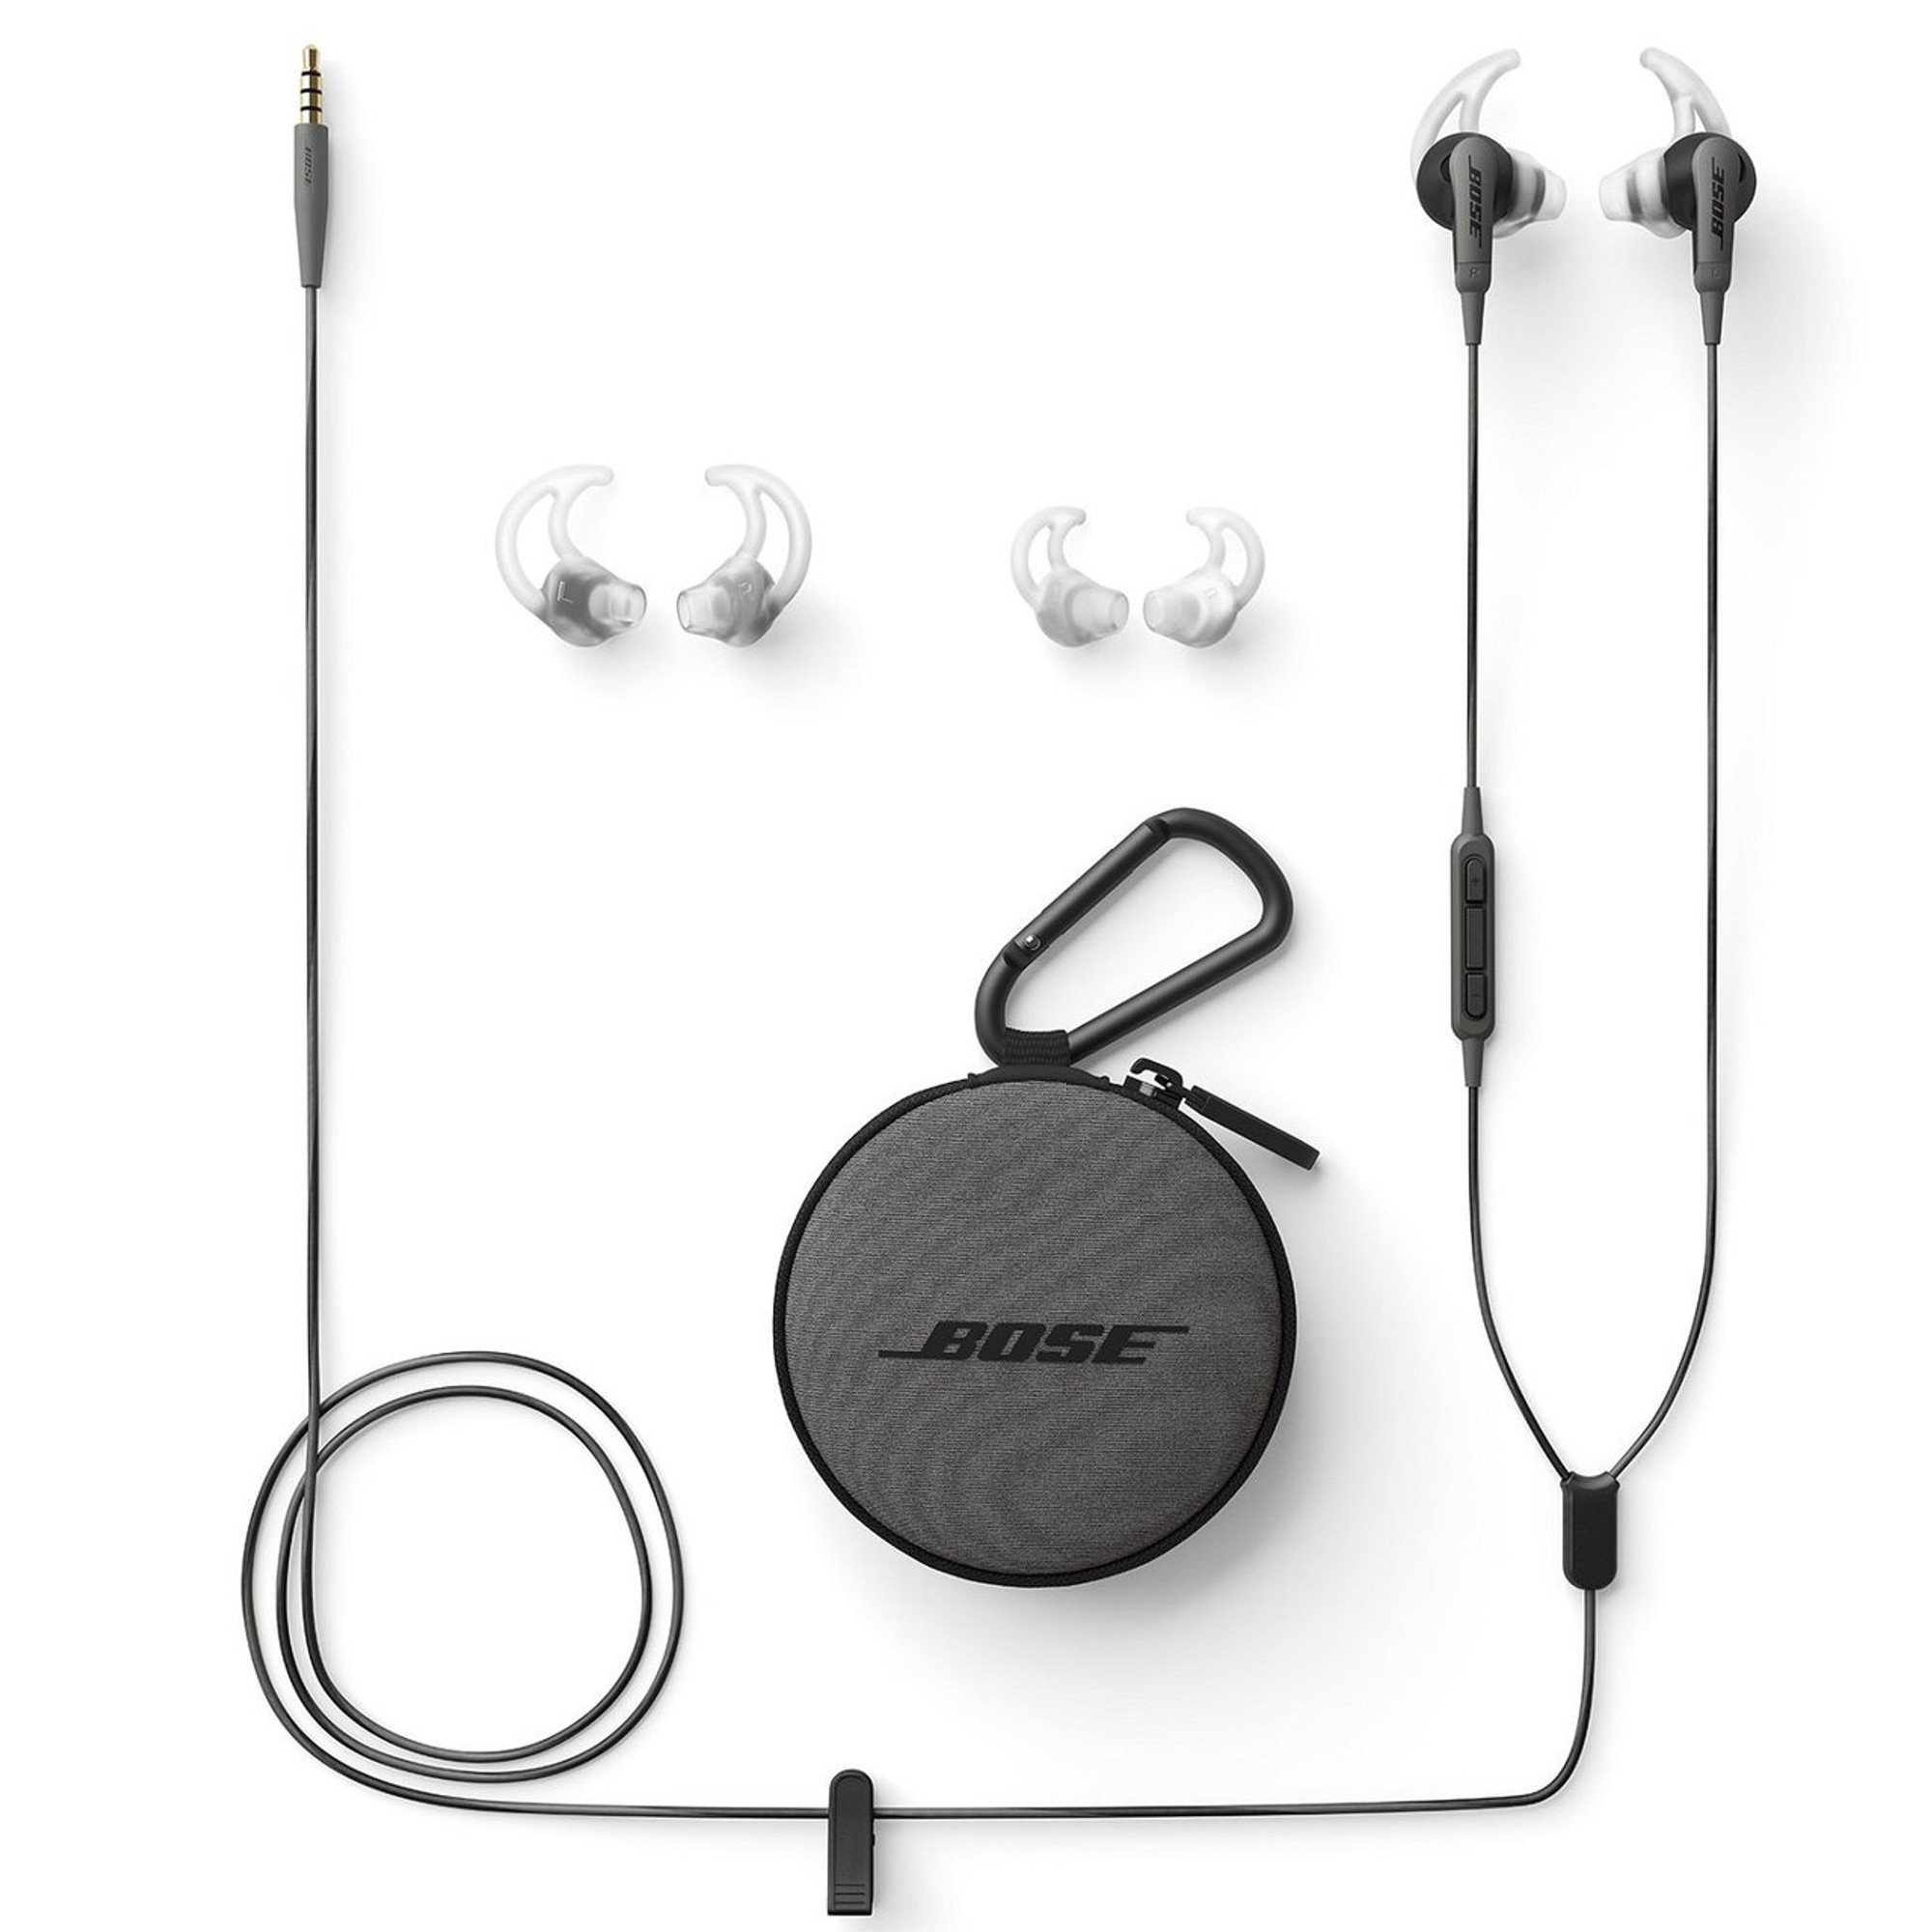 9fdcb309f90 Bose SoundSport In Ear Headphones For Android Devices (Charcoal)